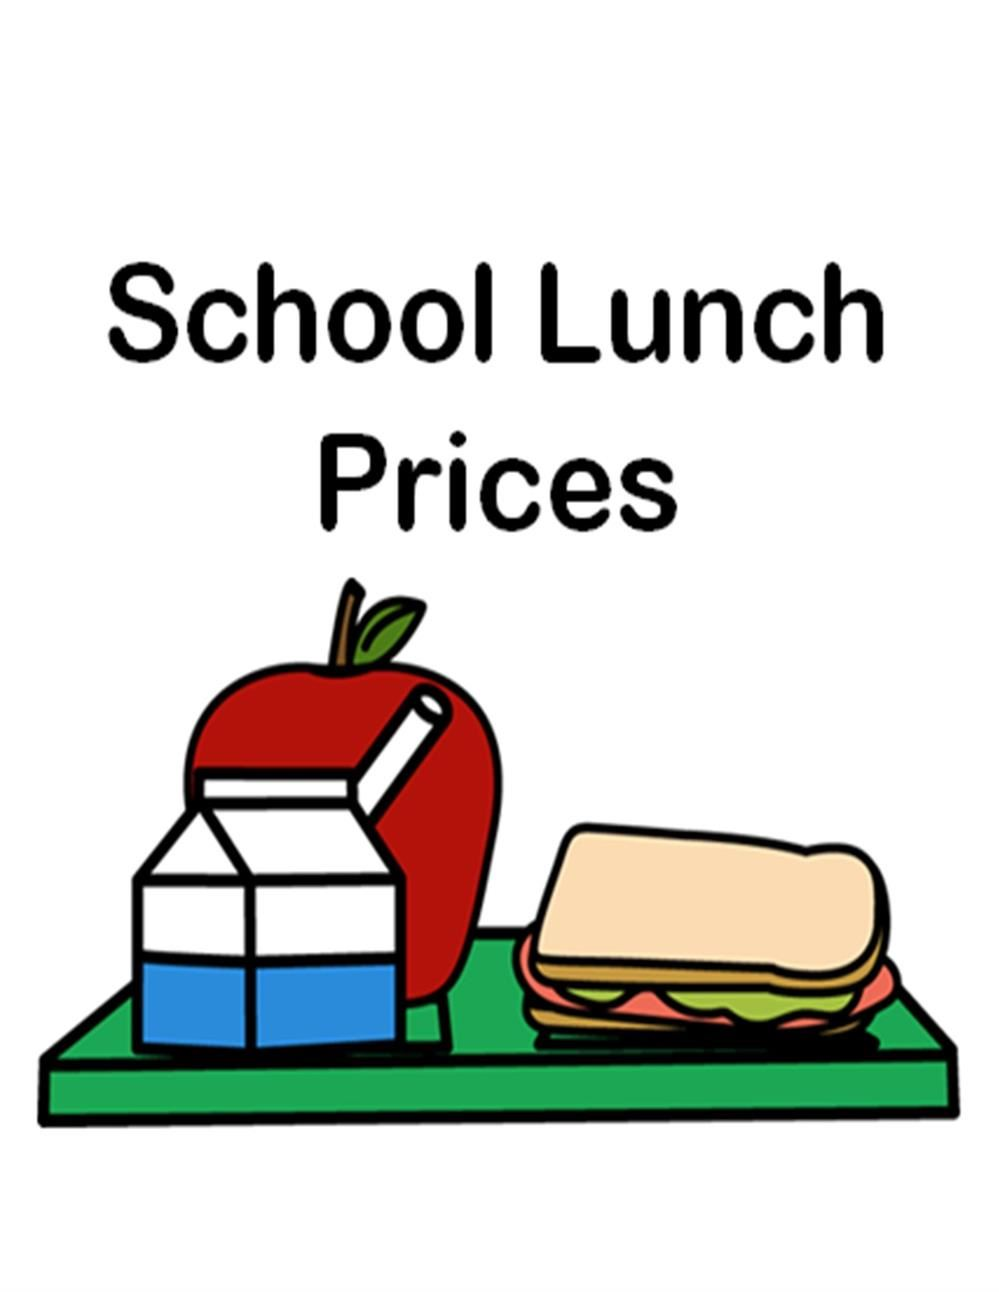 20-21 Cafeteria Meal Prices